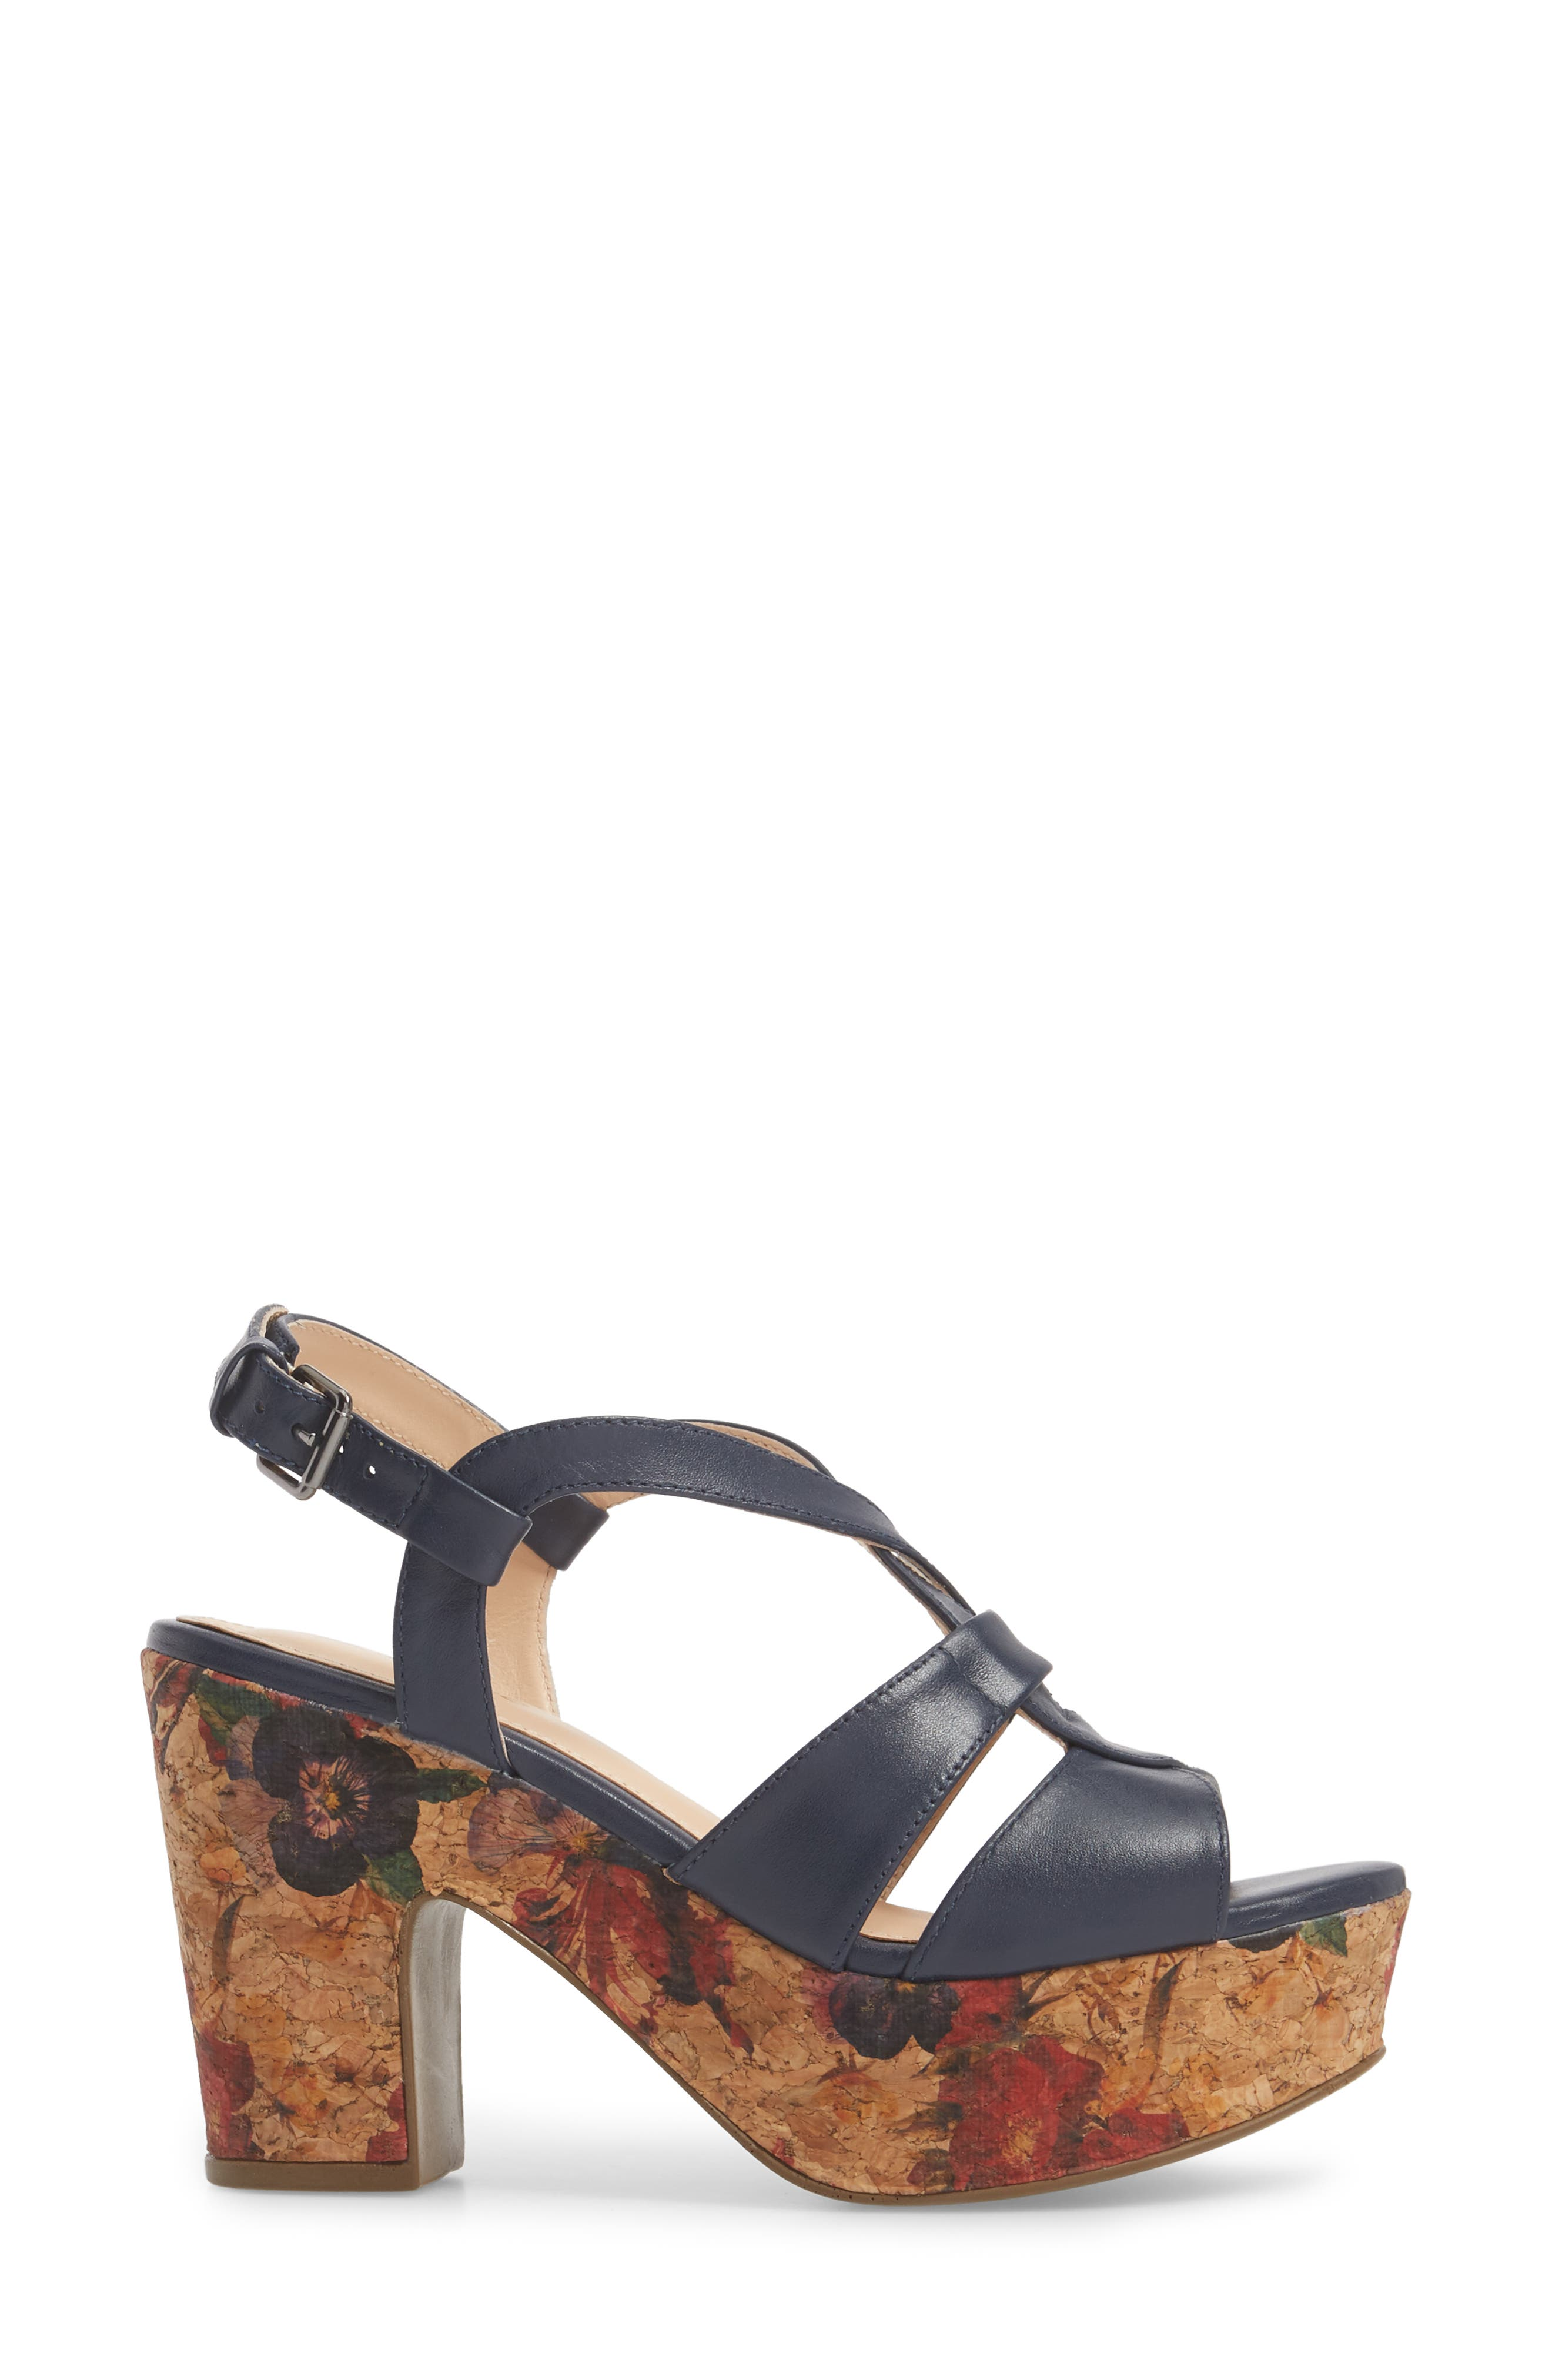 KLUB NICO,                             Victoria Platform Sandal,                             Alternate thumbnail 3, color,                             NAVY LEATHER